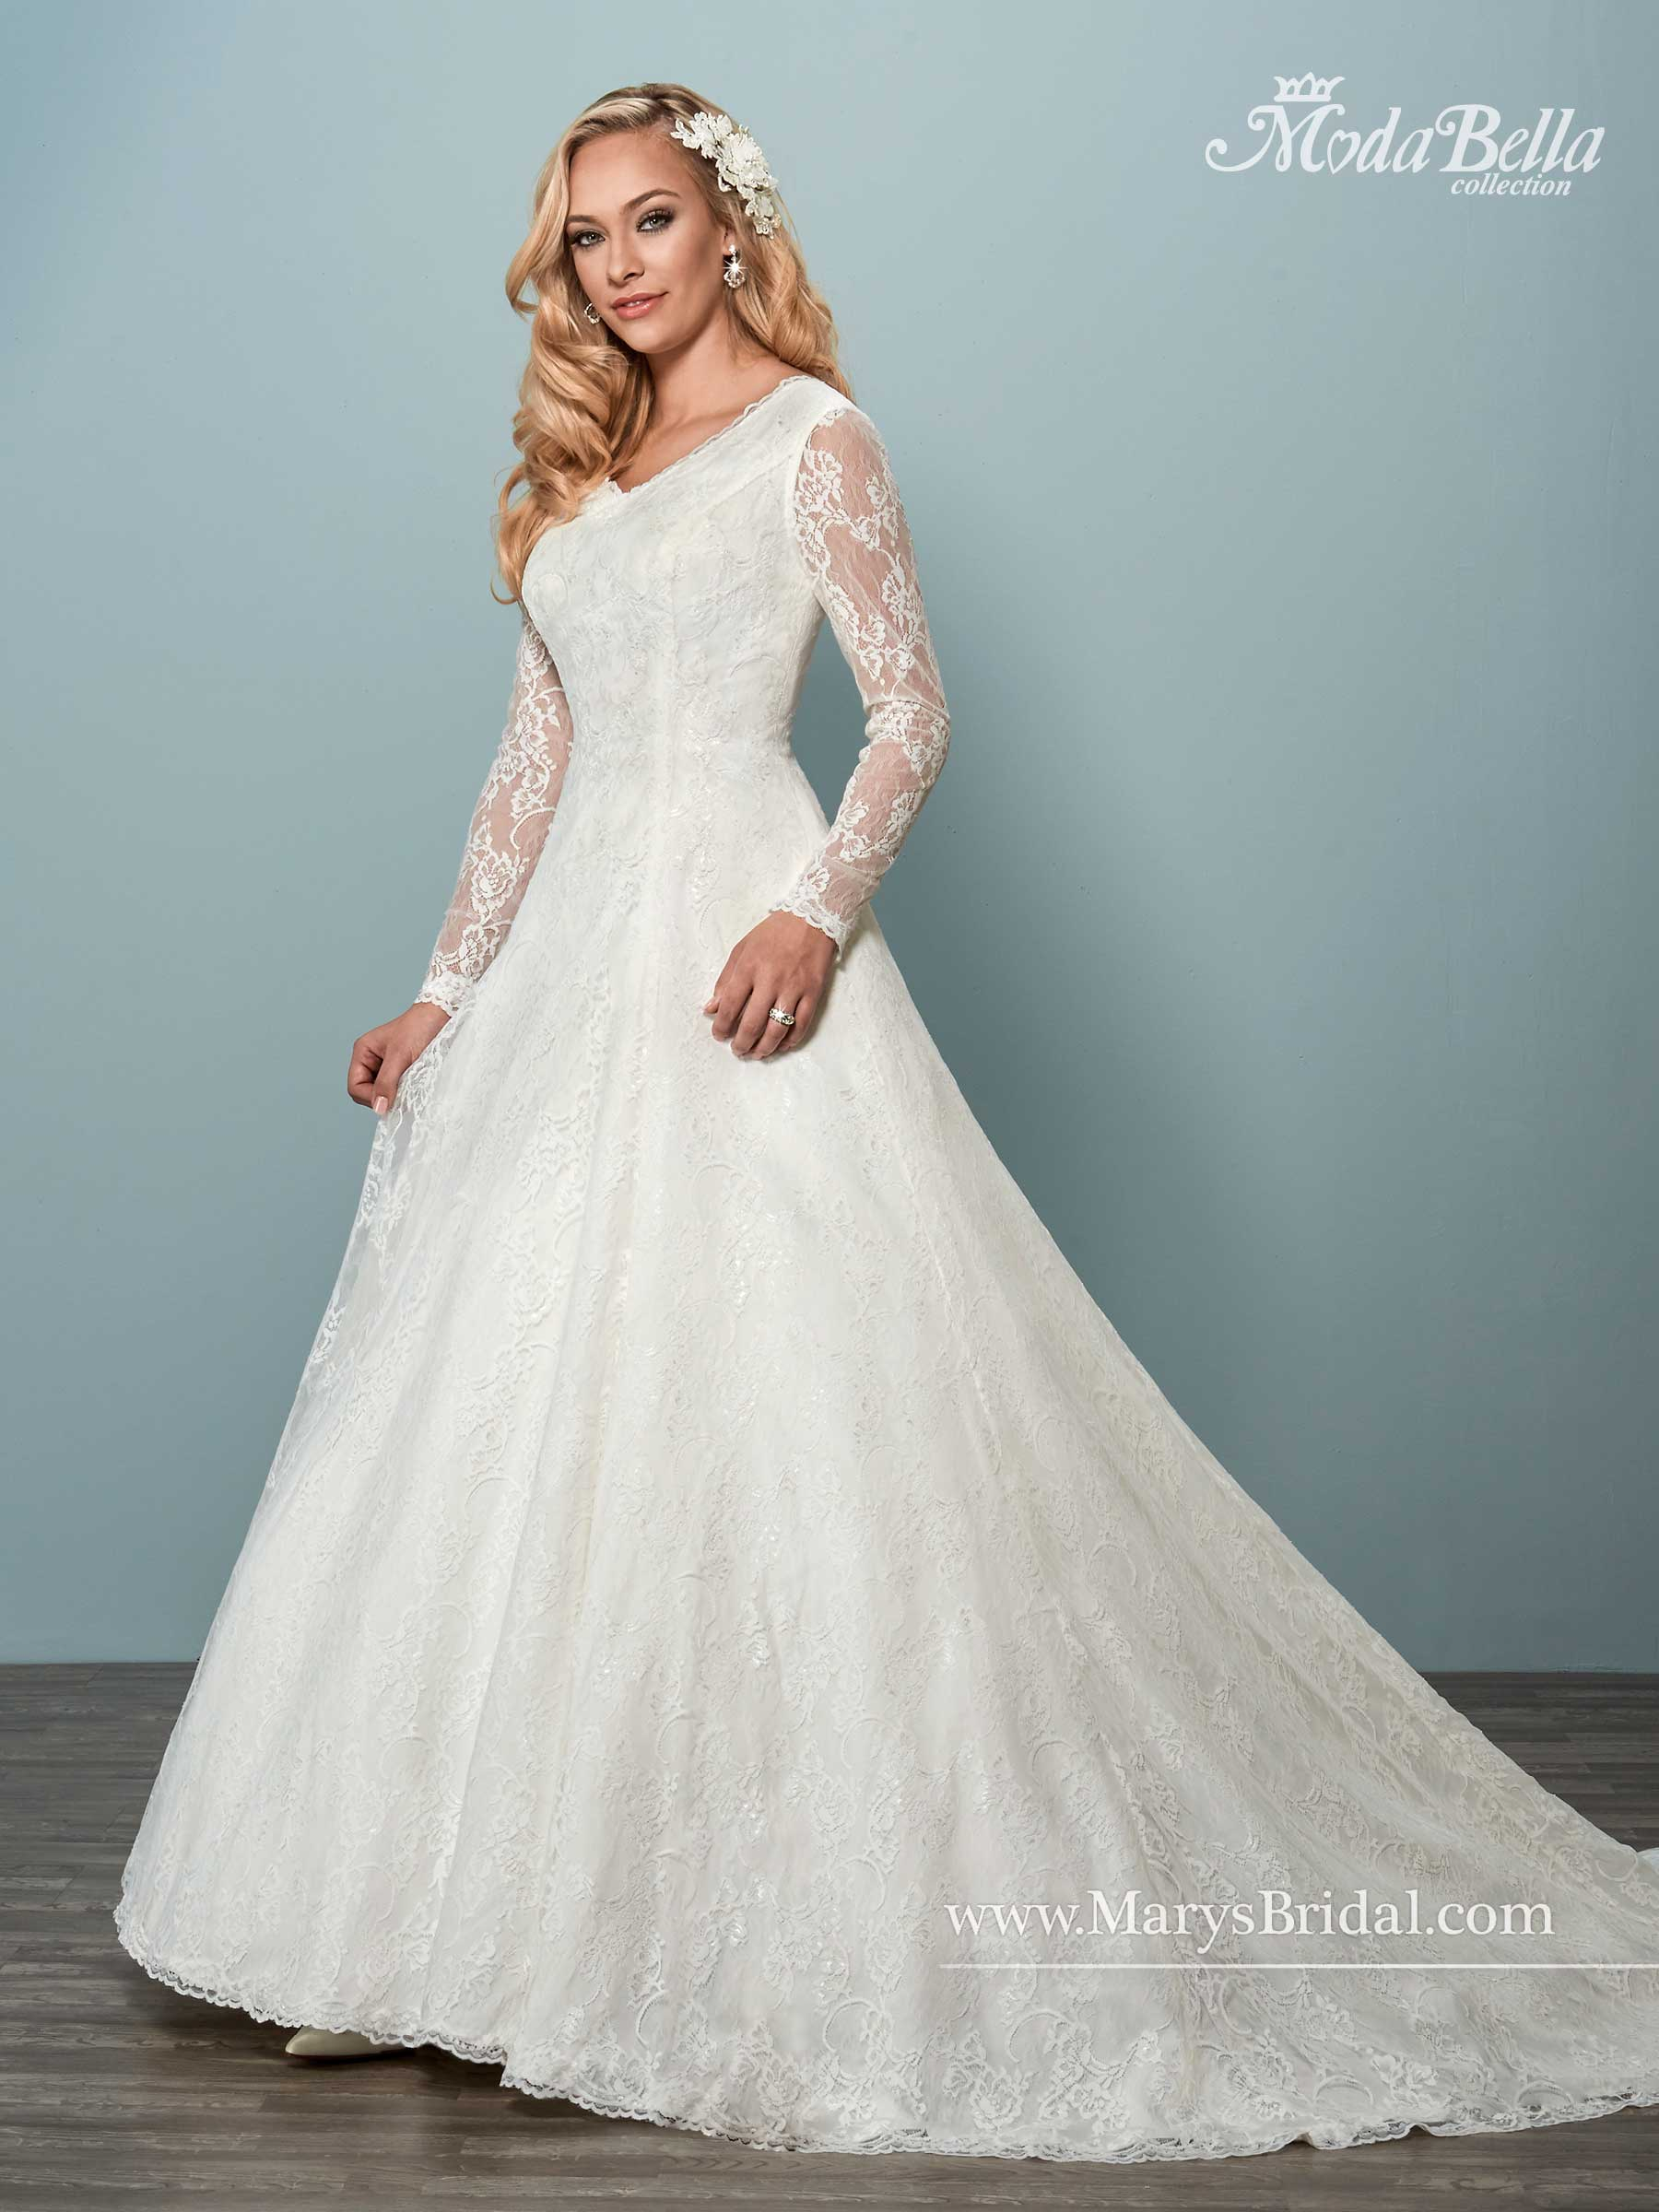 Bridal Dresses | Style - 3Y620 in Ivory or White Color